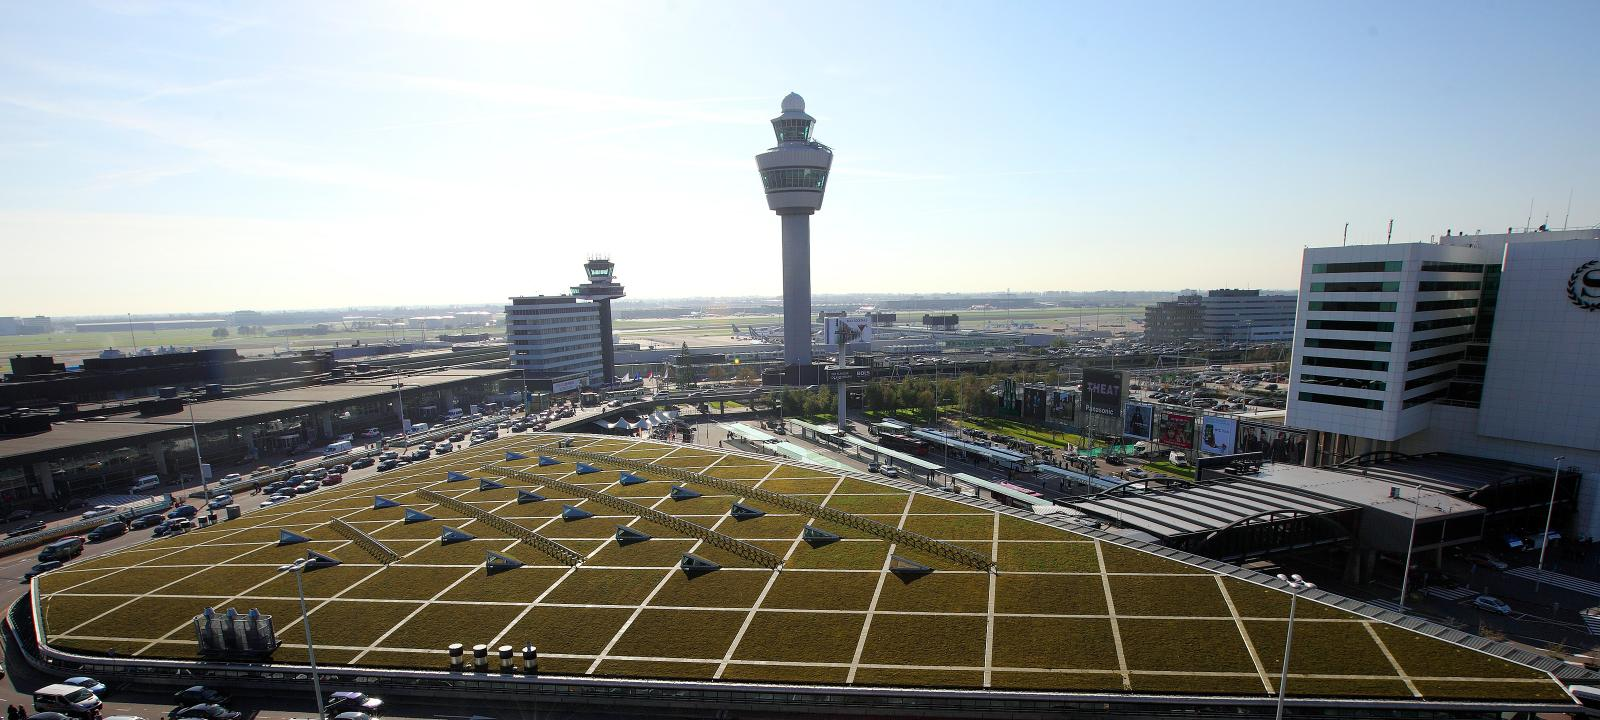 Airport Schiphol Amsterdam Zinco Green Roof Systems